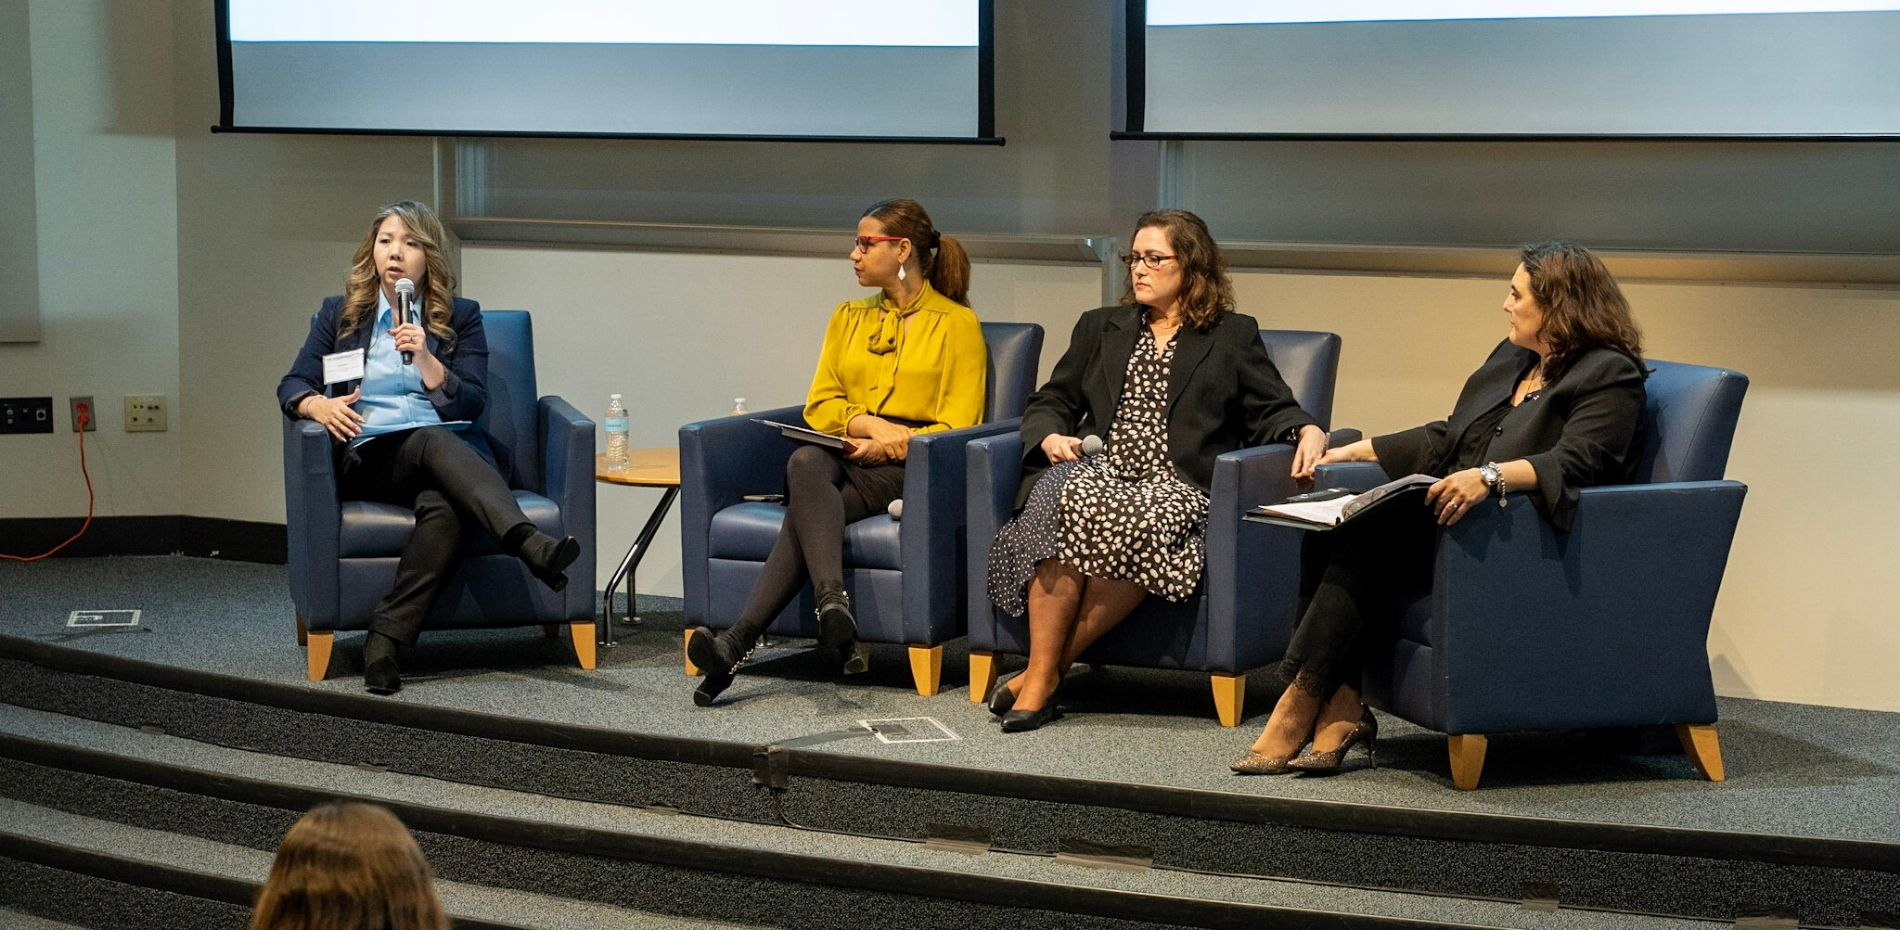 Panel discussion around the long-term impact of higher education initiatives to broaden STEM participation